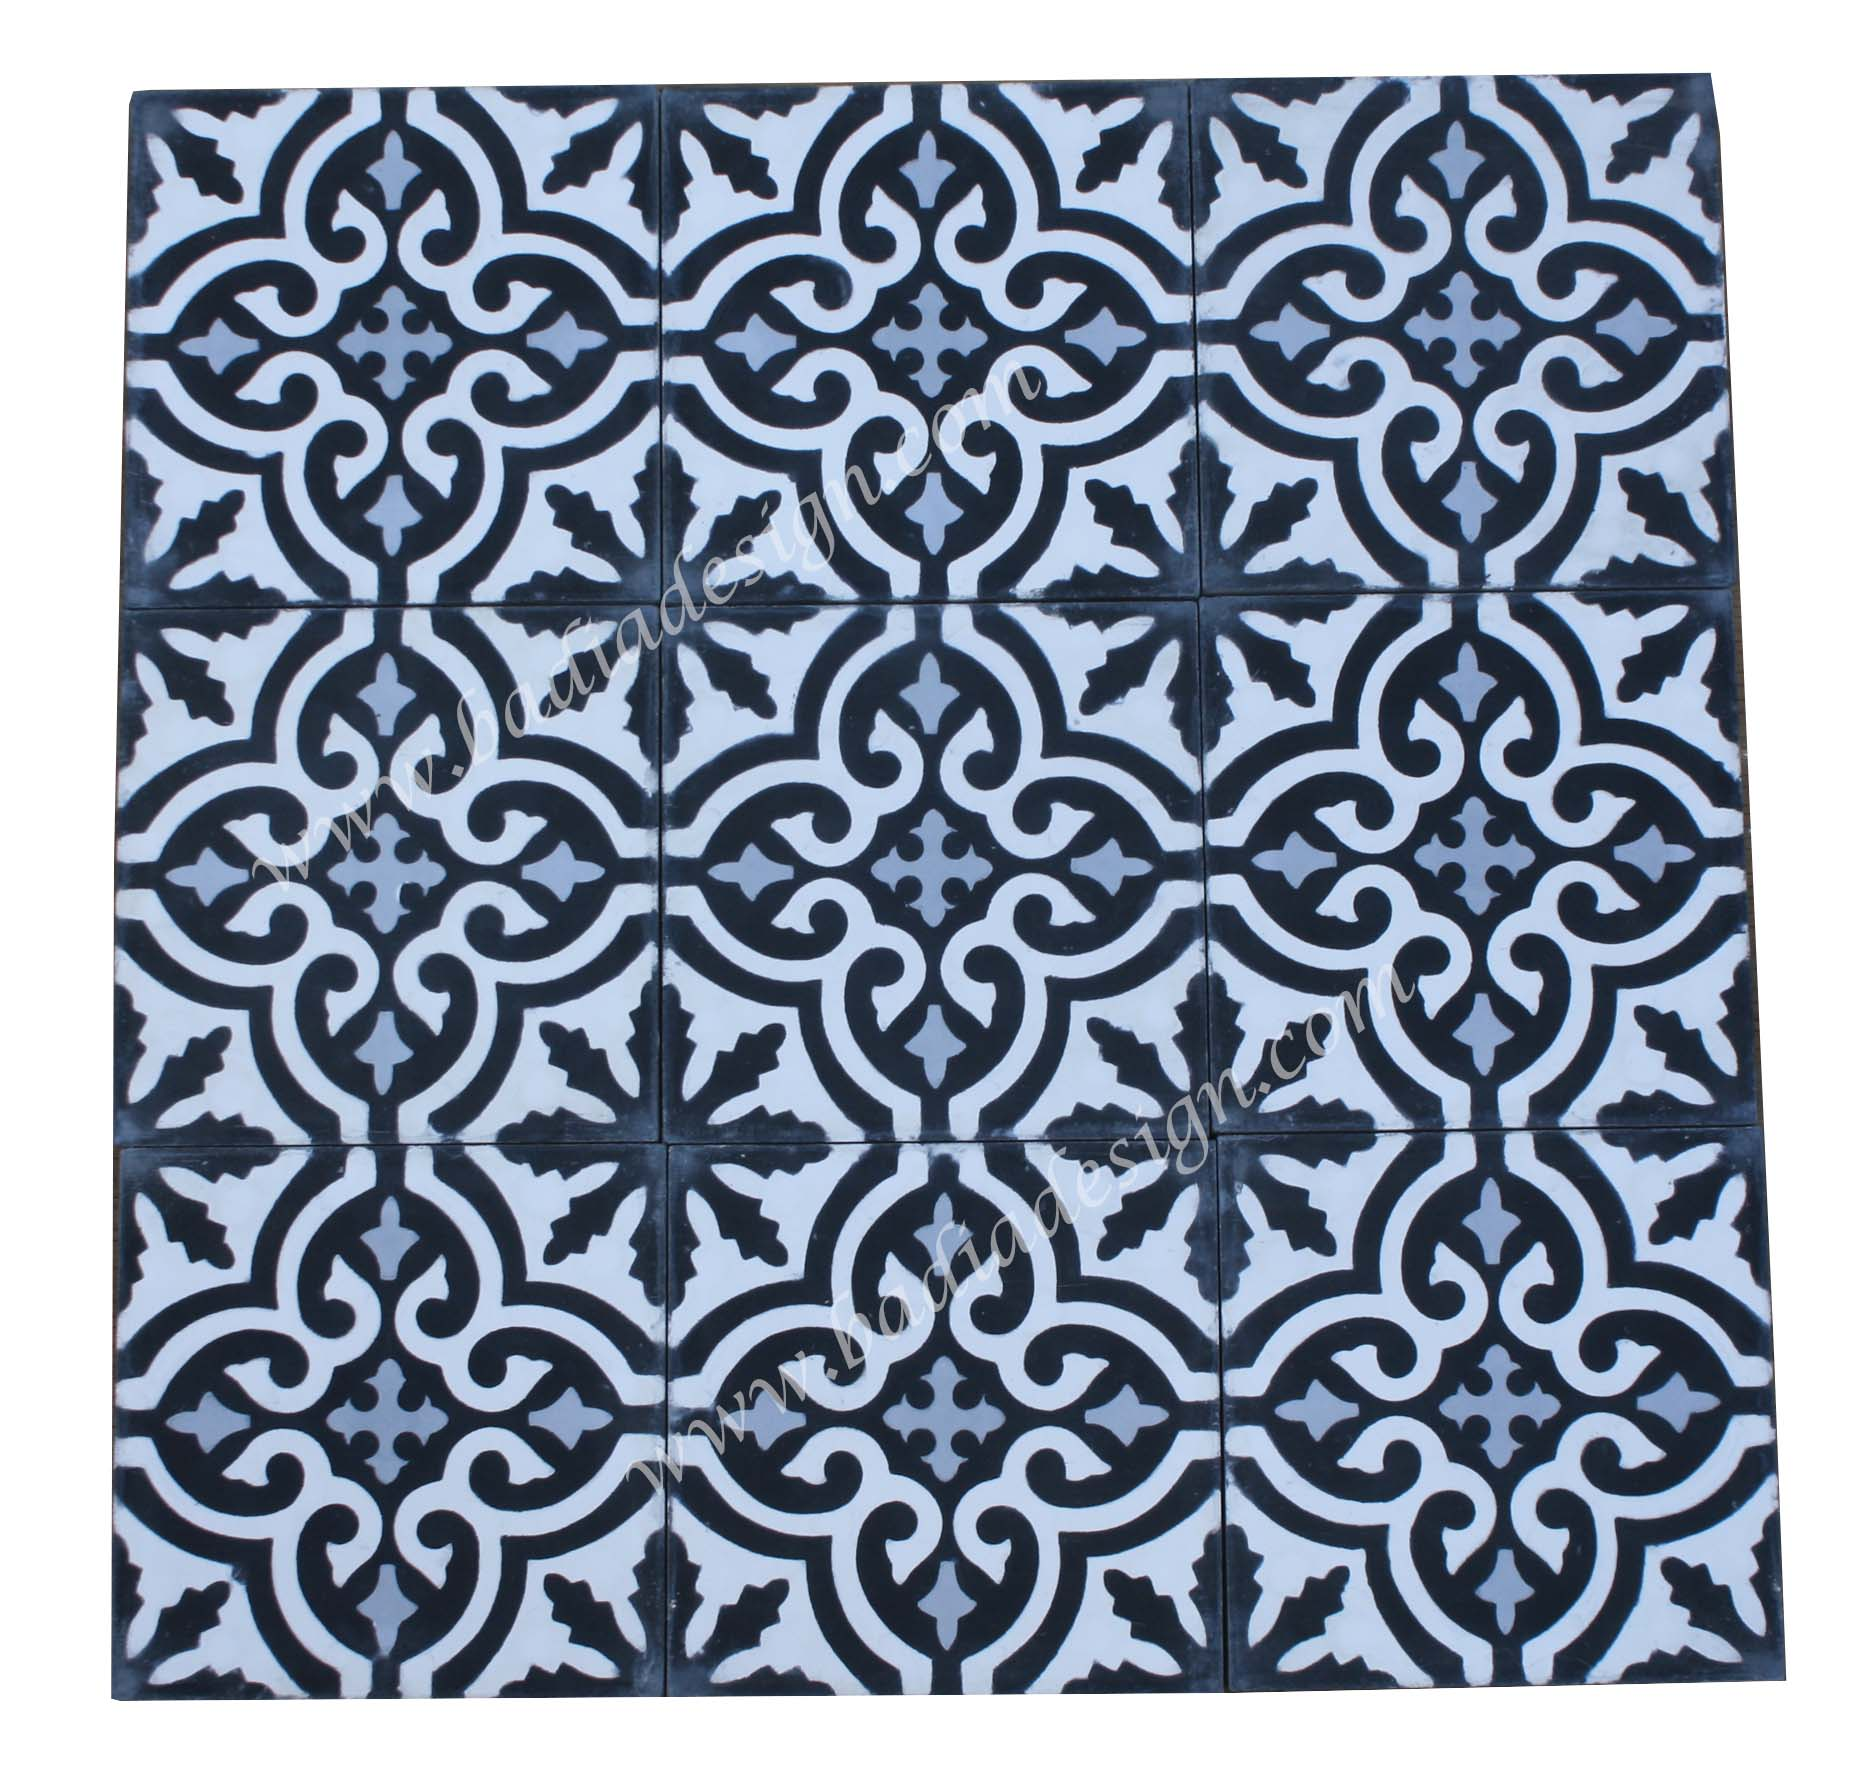 moroccan-hand-painted-terracotta-tile-ct084-1.jpg